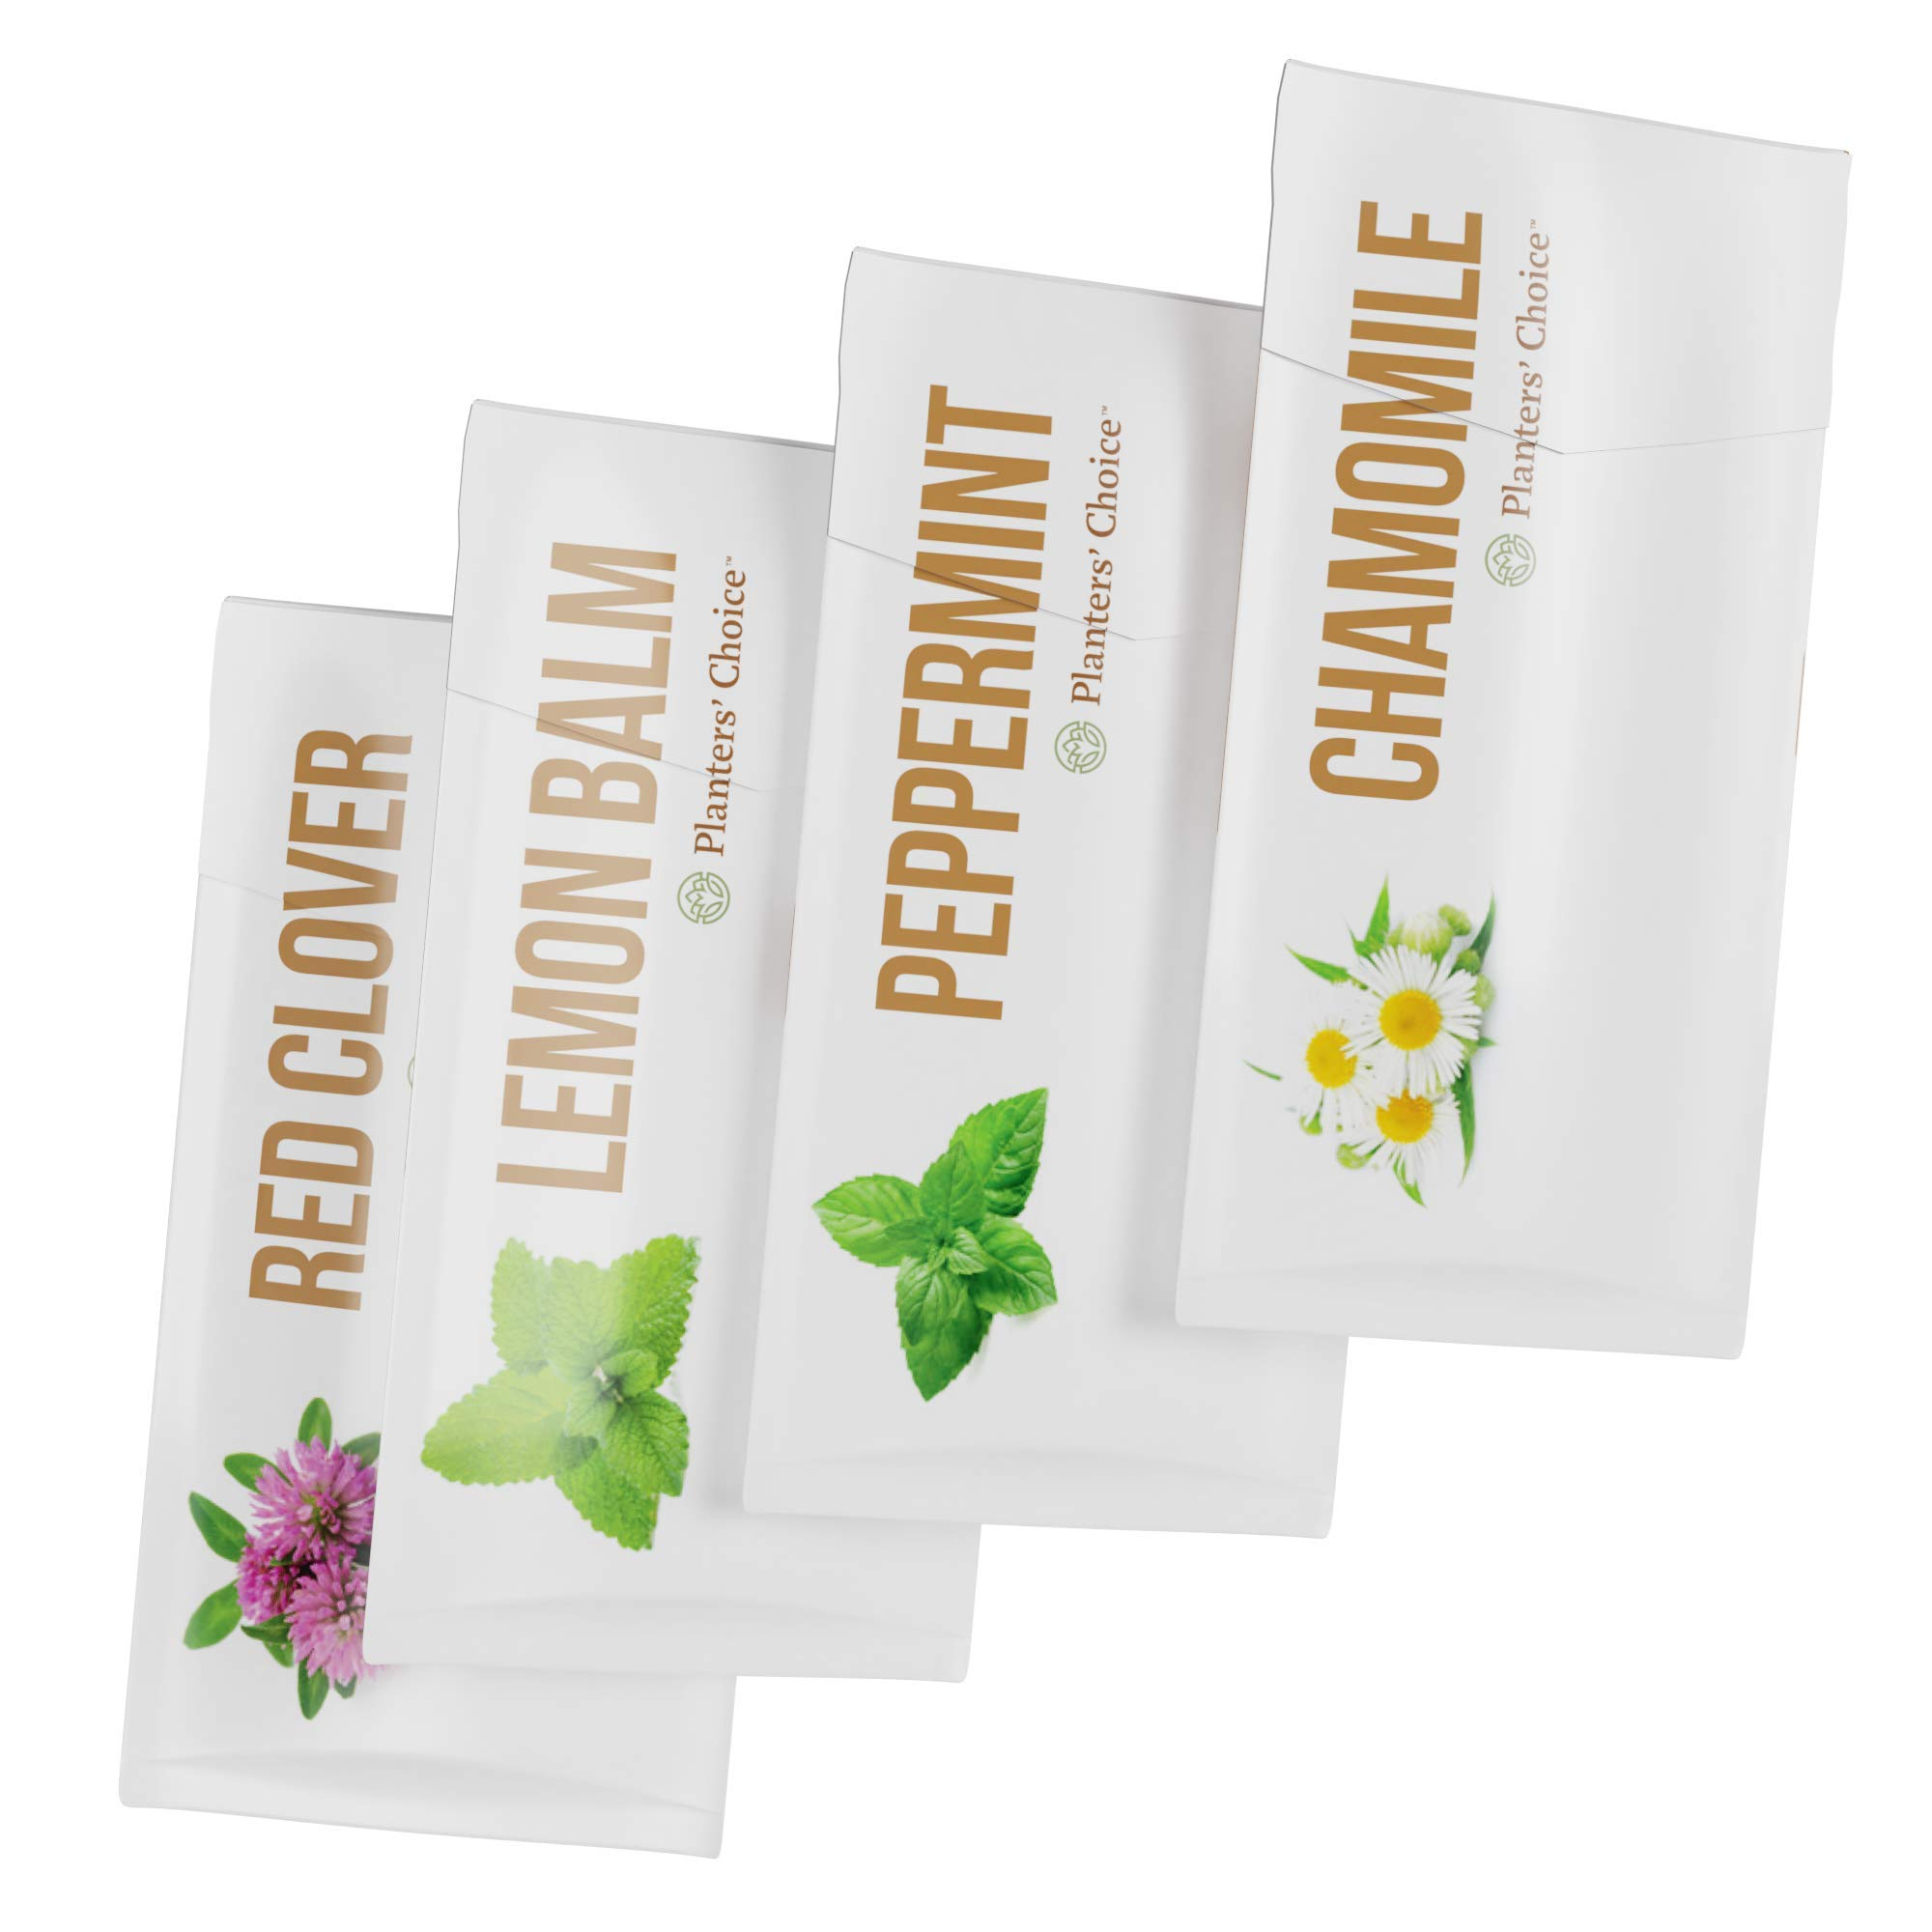 Grow 4 of Your Own Organic Herbal Tea Kit + Stainless Steel Tea Infuser | Chamomile, Peppermint, Lemon Balm, Red Clover | Everything Included: Pots, Soil, Seeds, Booklet, Bamboo Plant Labels by Planters' Choice (Image #8)